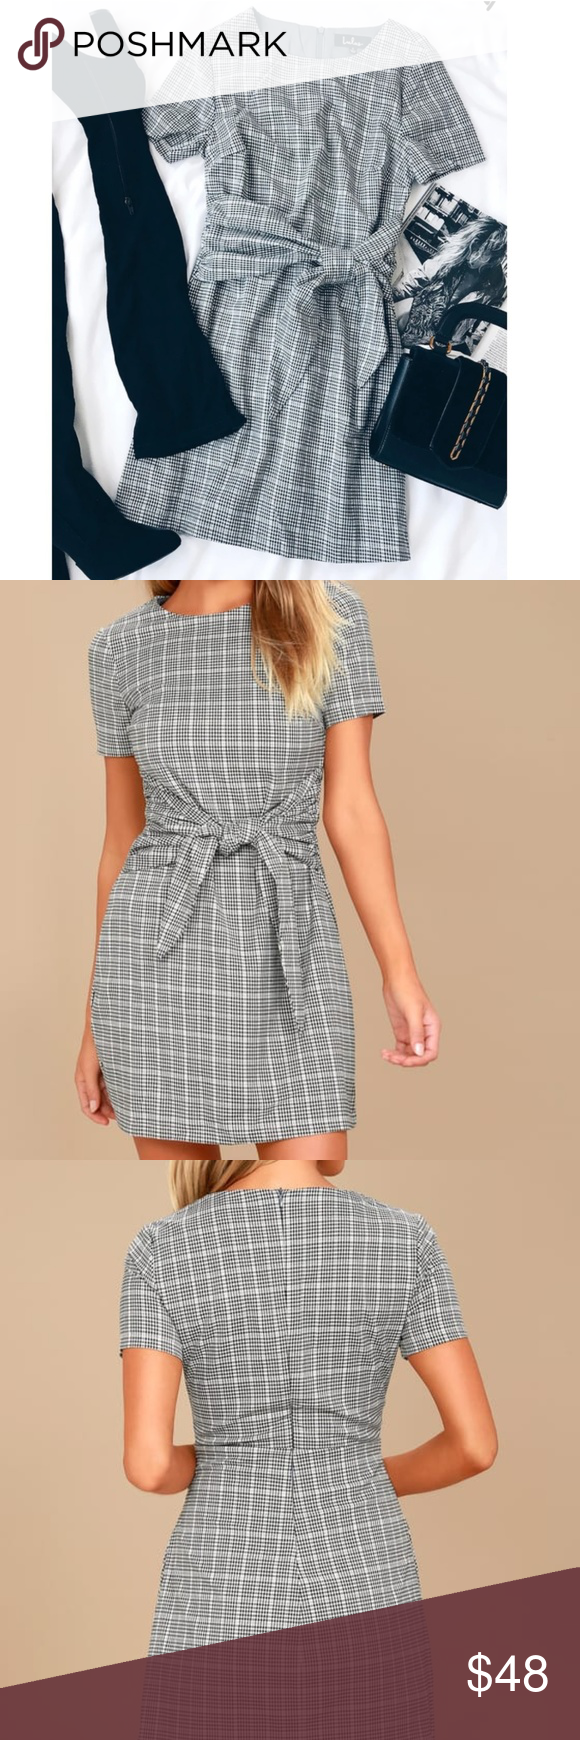 Nwot Lulu S Penny Black White Knotted Dress Meet Us In The Quad In The Penny Black And White Gingham Knotted Sheath Dress Clothes Design Lulu Dresses Fashion [ 1740 x 580 Pixel ]